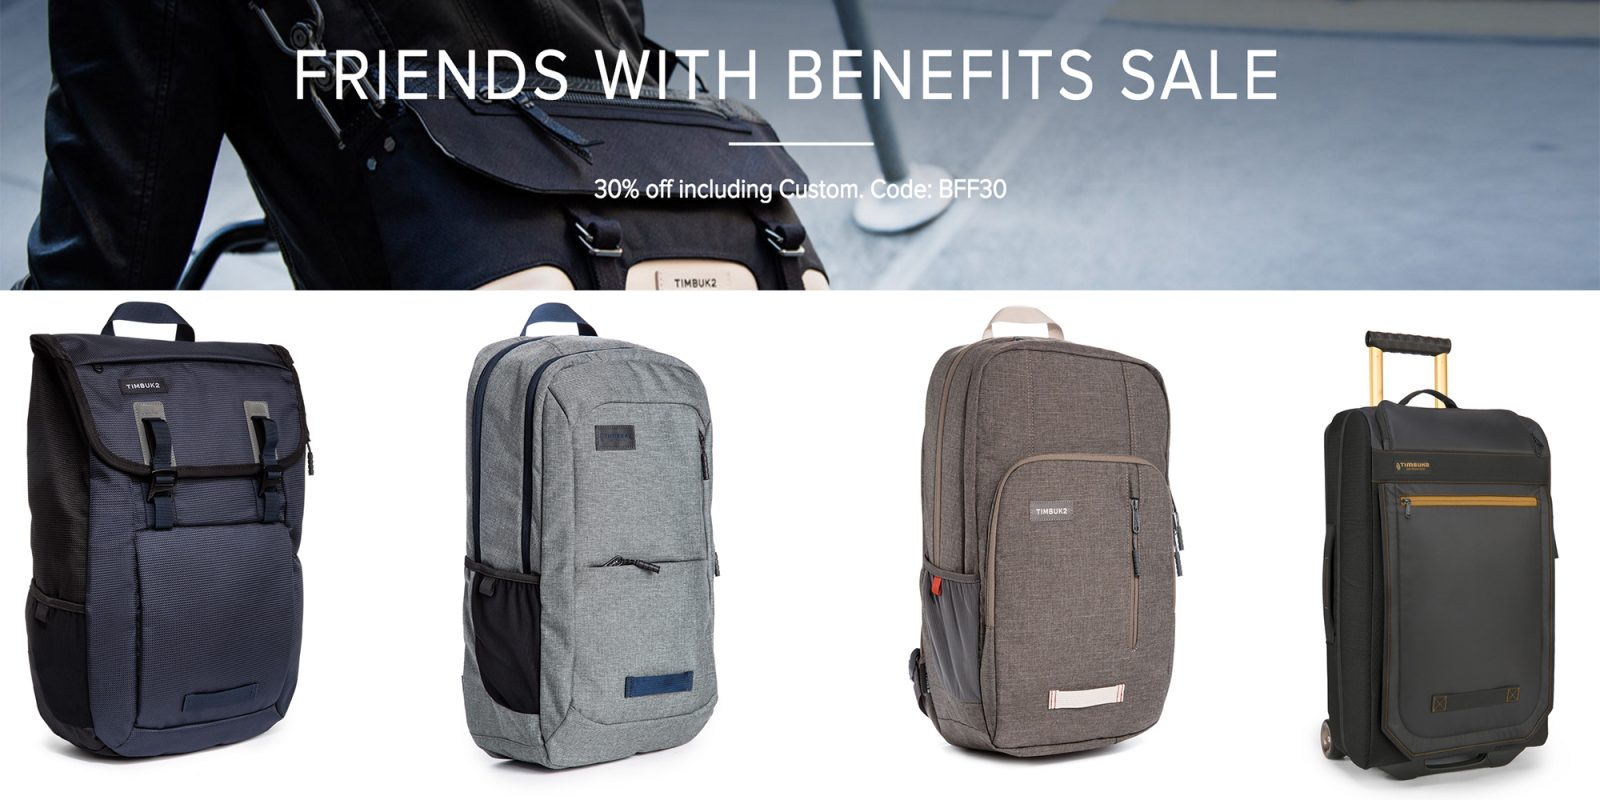 87c82f6b61 Timbuk2 s Friends w  Benefits Sale brings 30% off top styles  messenger bags  from  44